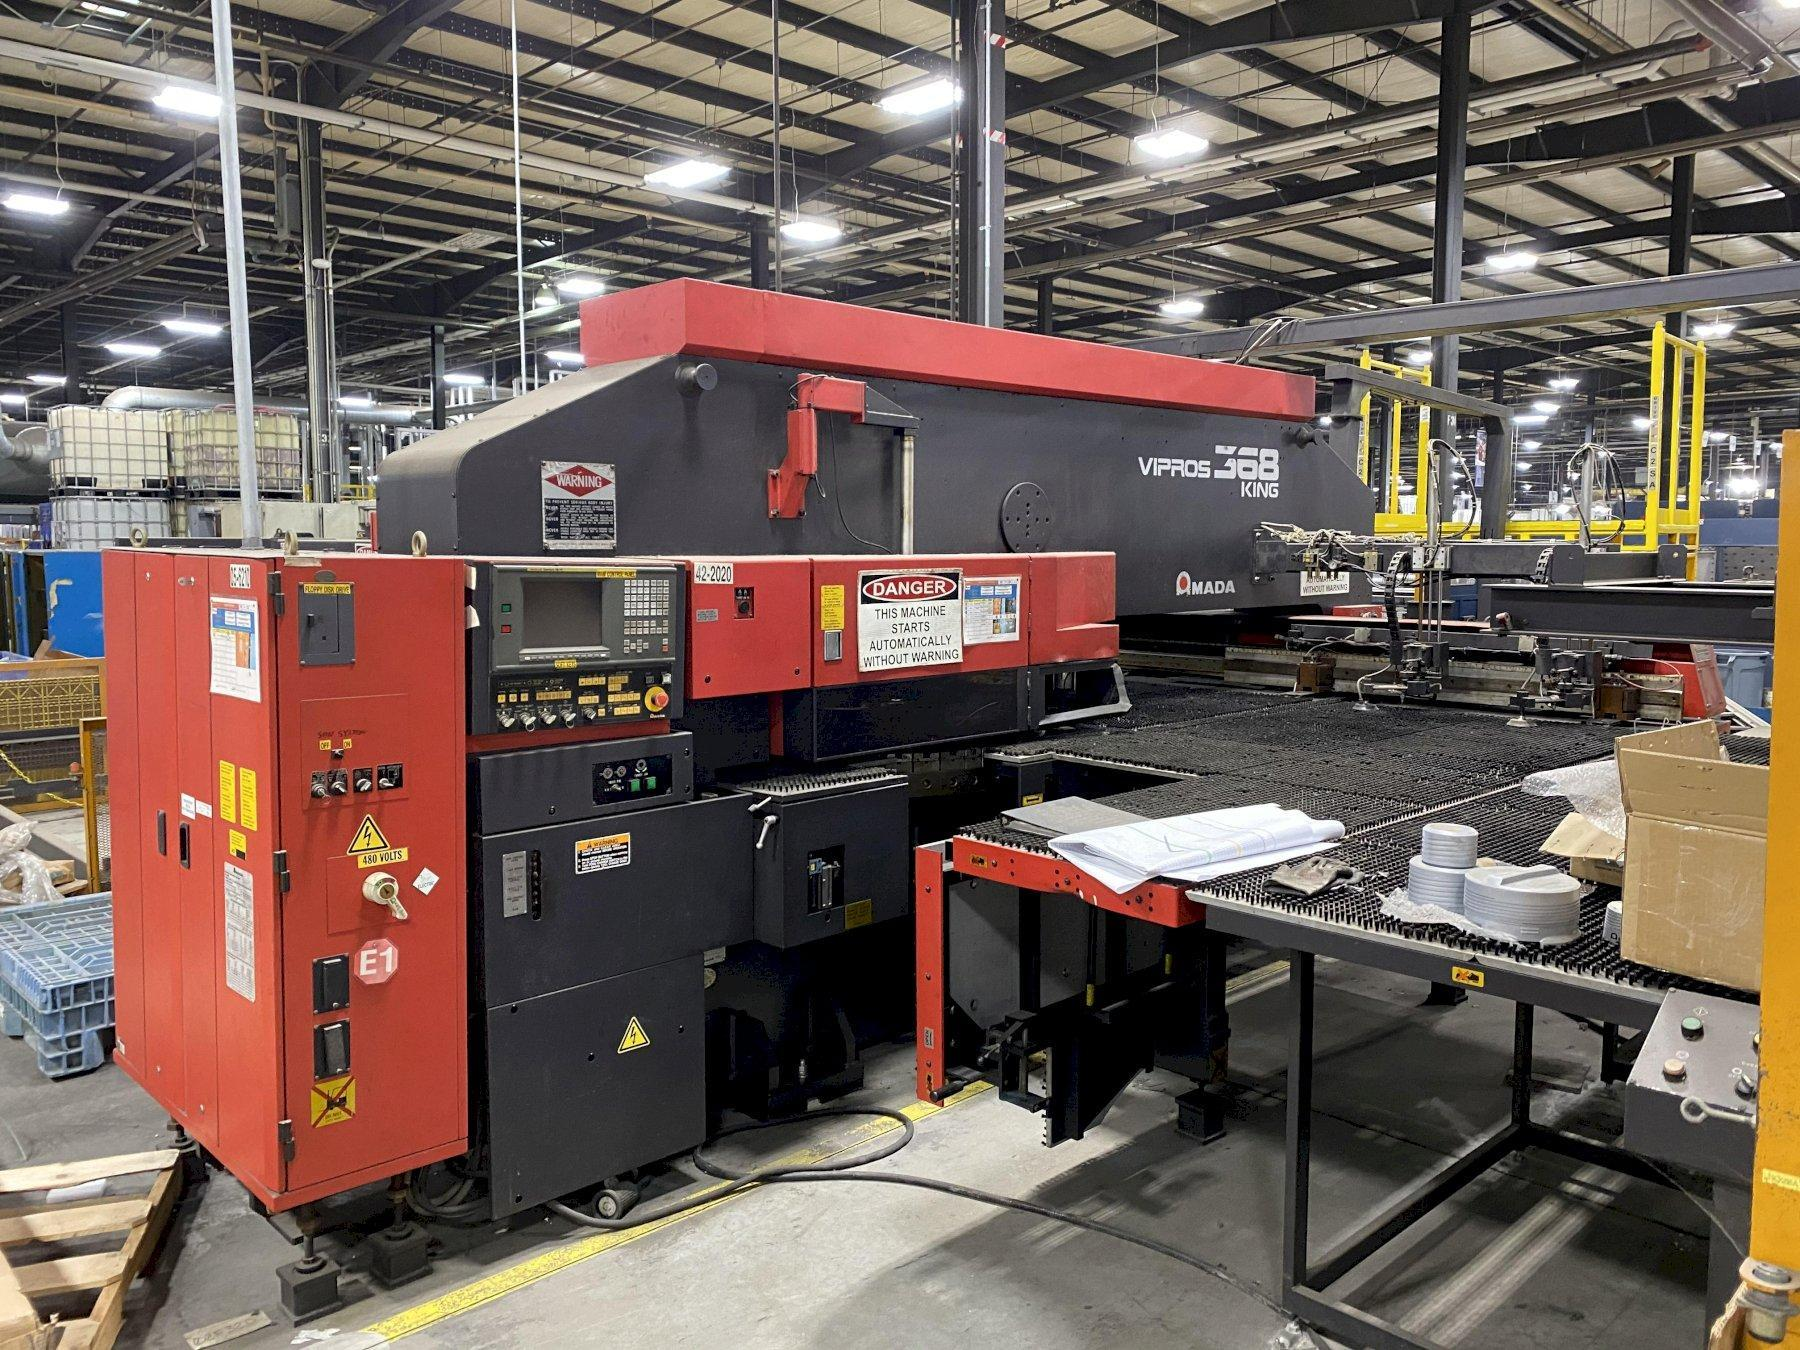 33 TON AMADA VIPROS 368 KING CNC TURRET PUNCH WITH LOADING TOWER AND UNLOADER SYSTEM. STOCK # 0848820